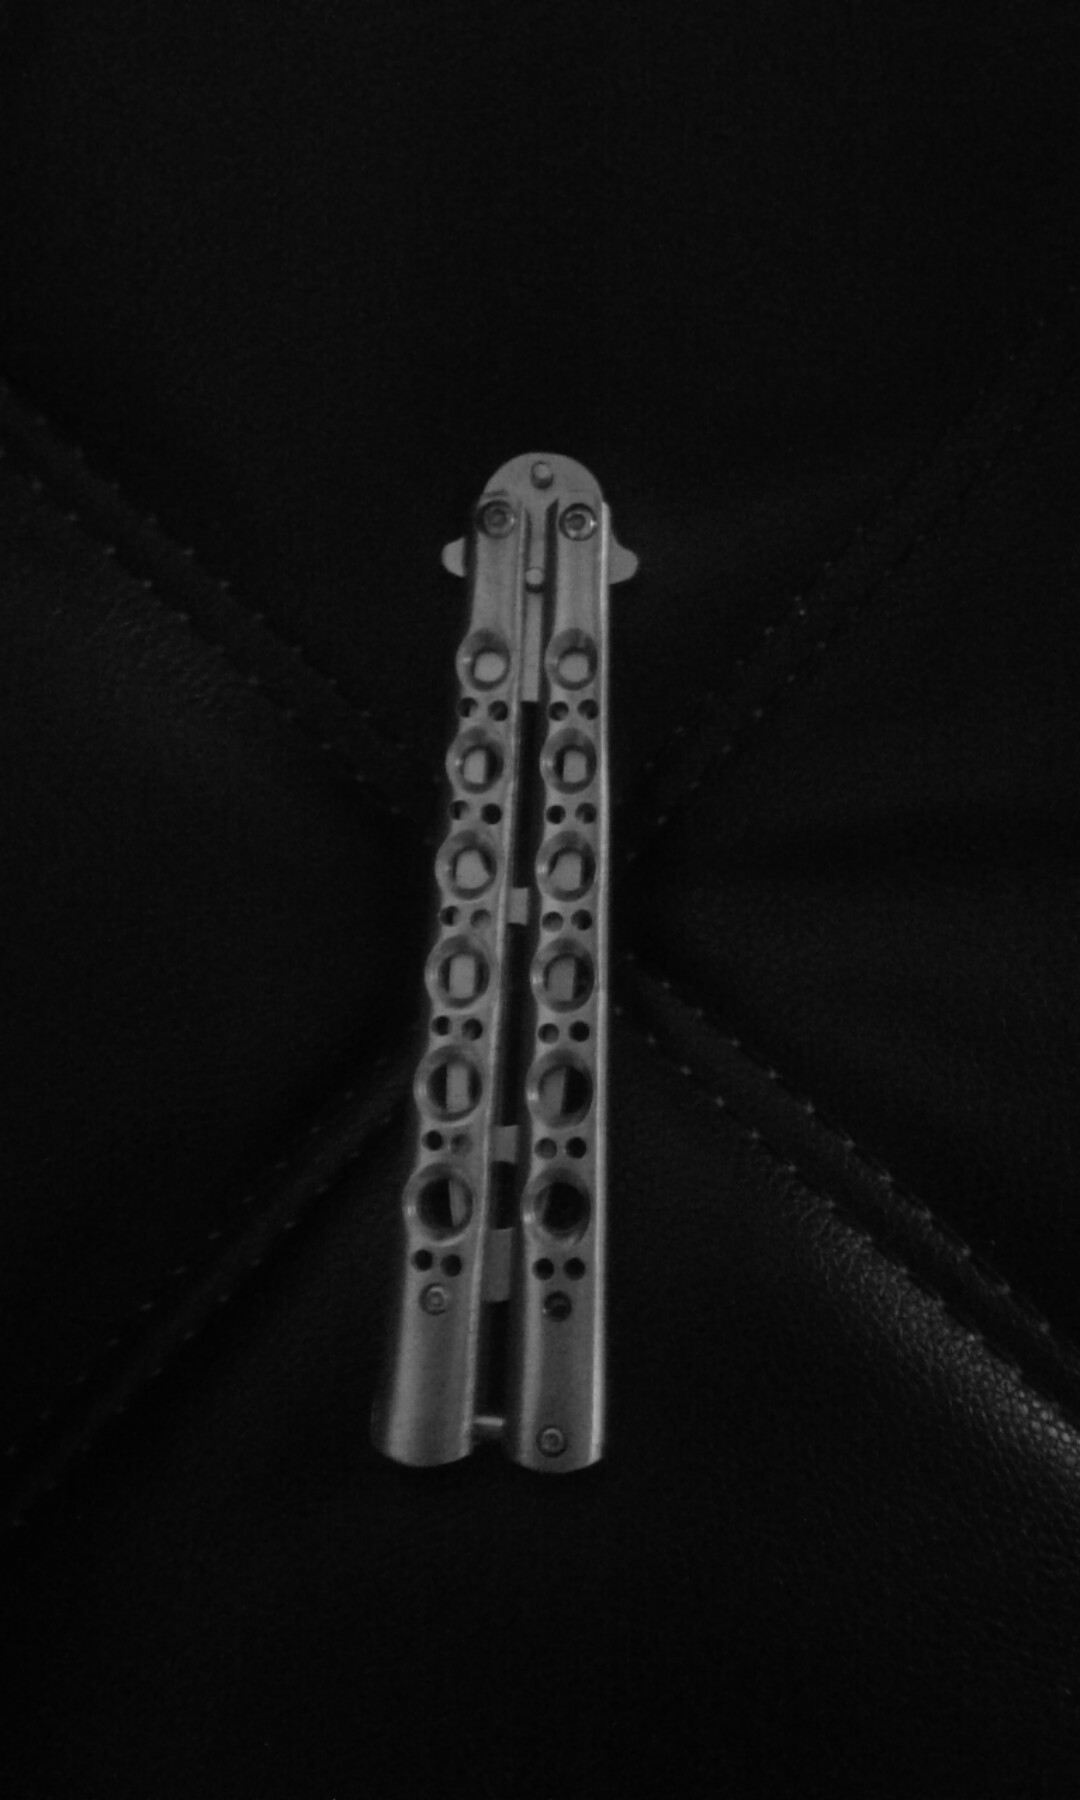 Balisong(butterfly knife trainer)(not sharp)